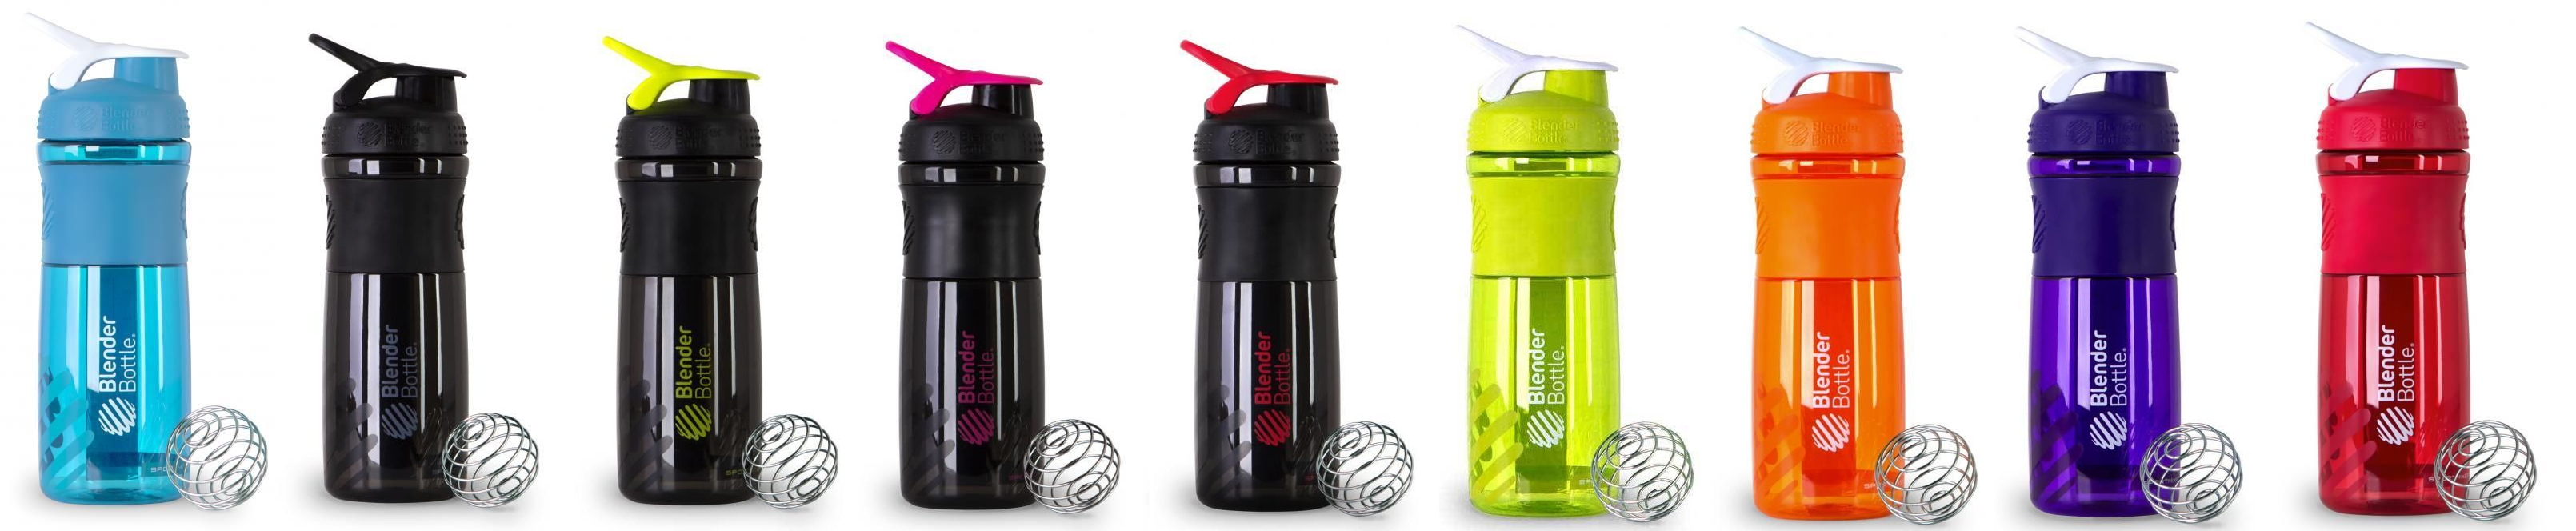 Шейкер BlenderBottle SportMixer 28 унций